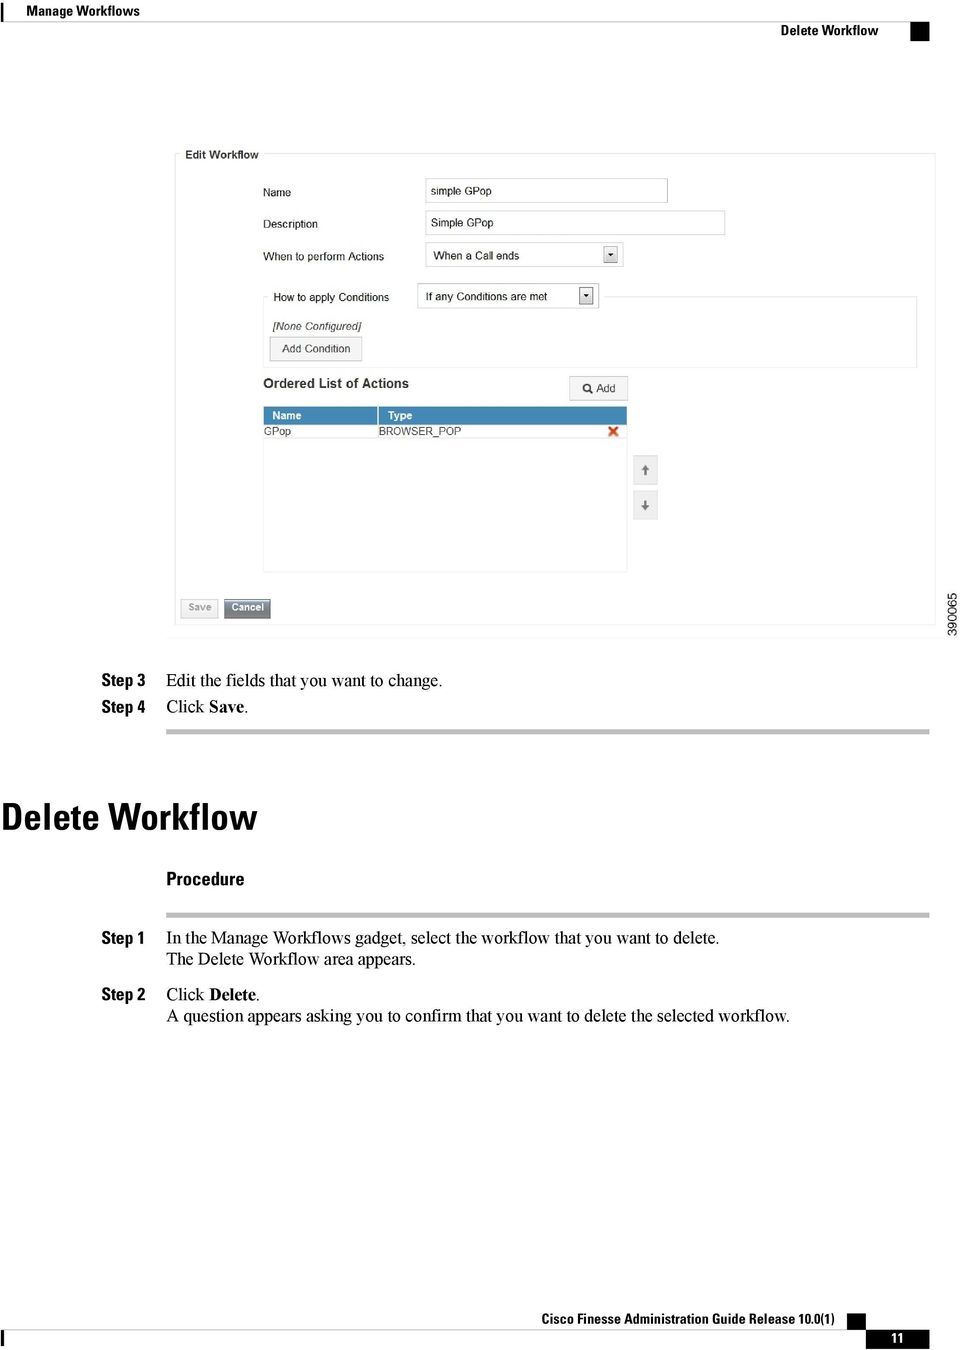 Delete Workflow In the gadget, select the workflow that you want to